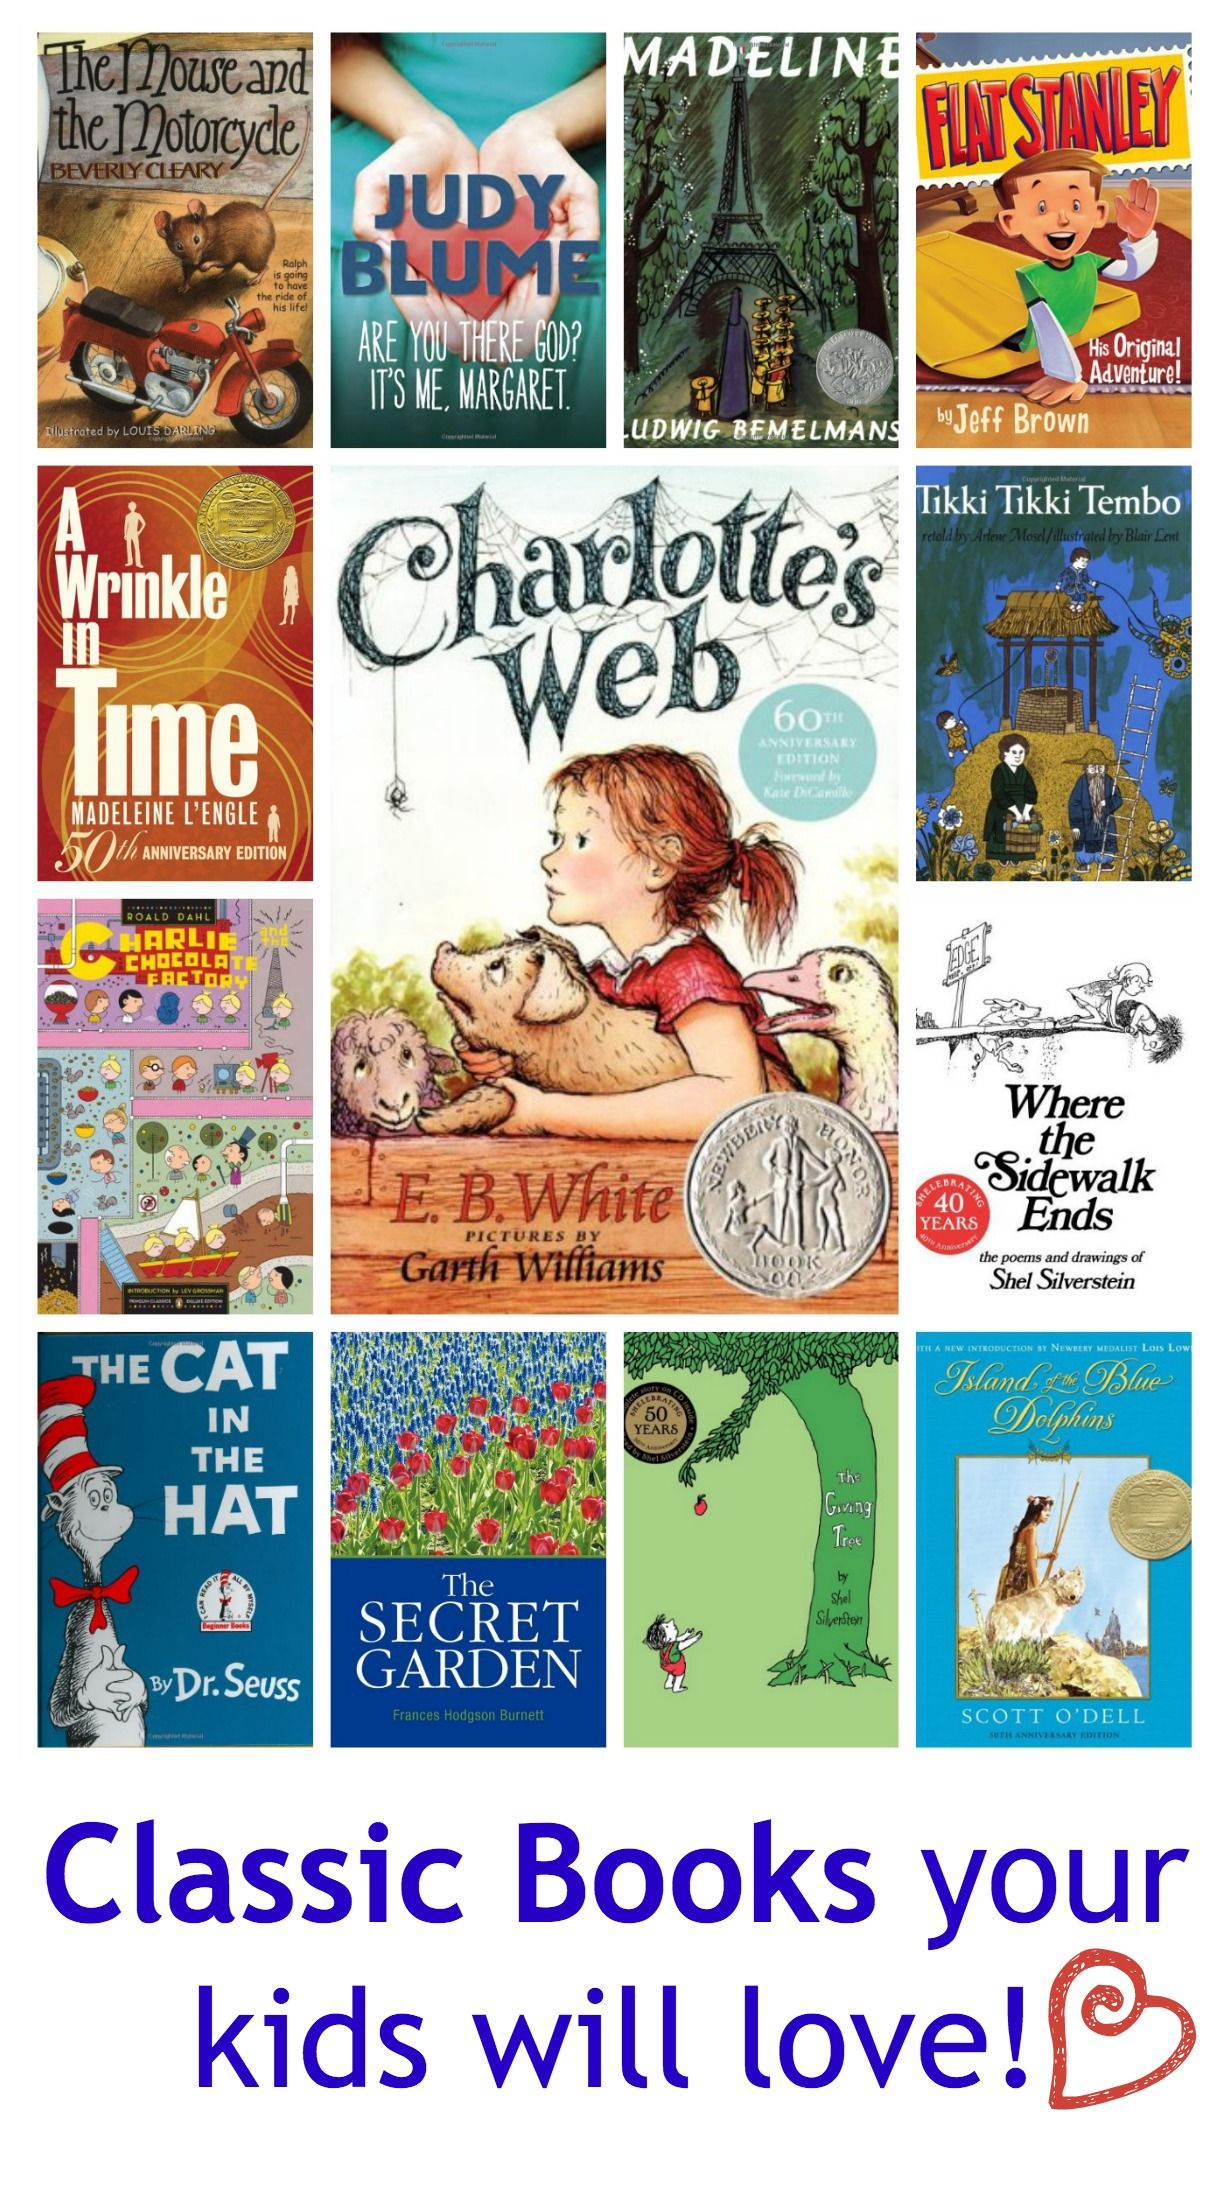 14 Classic Books For The Kids Brings Back Lots Of Great Memories Childrens Books Best Children Books Classic Childrens Books